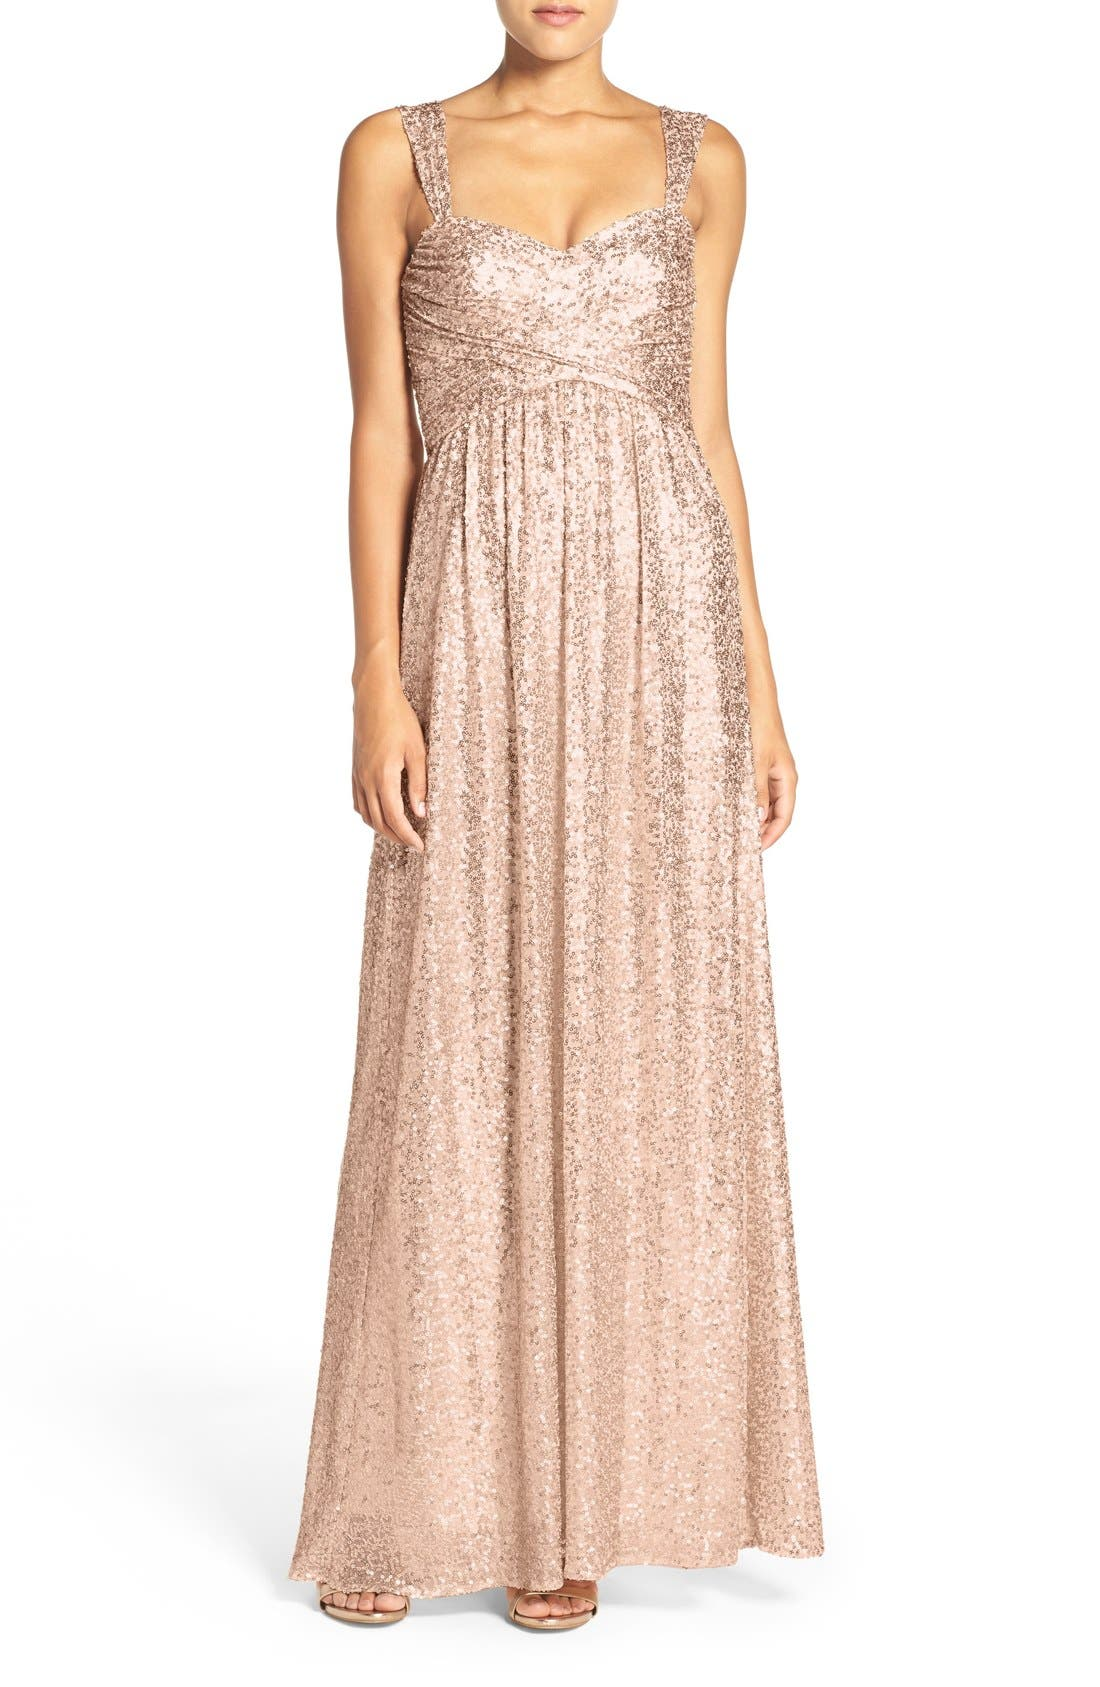 Main Image - Amsale 'Loire' Sweetheart Neck Sequin Gown